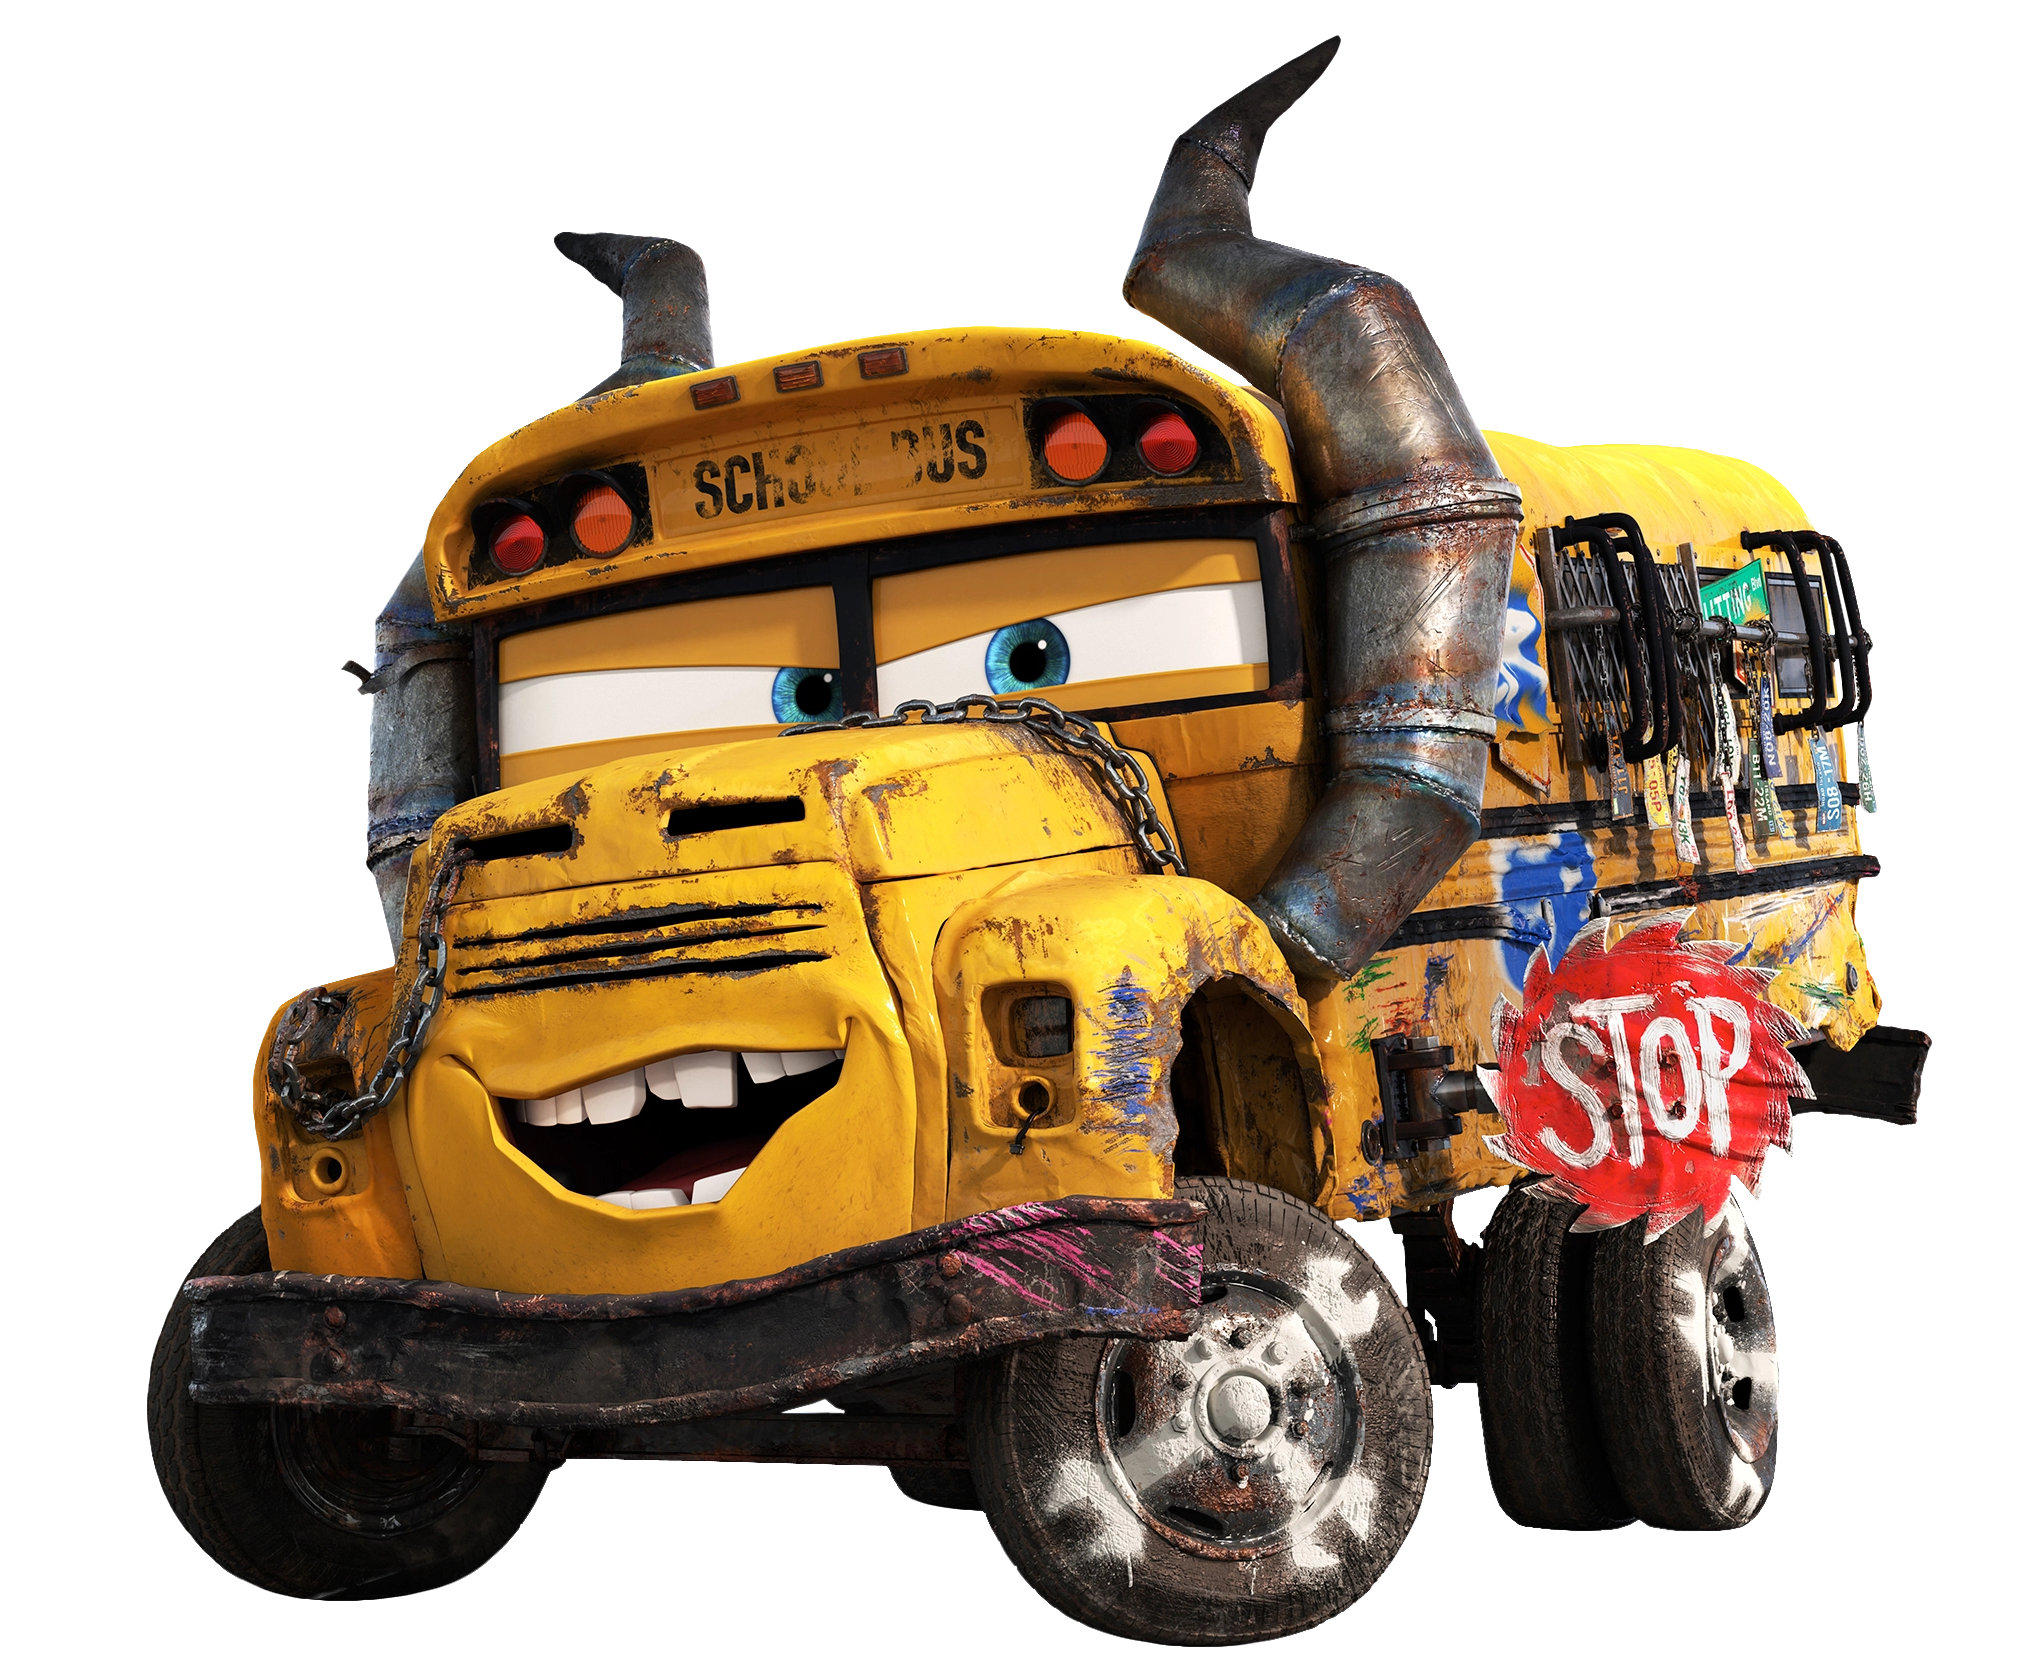 Cars 3 png. Miss fritter transparent image